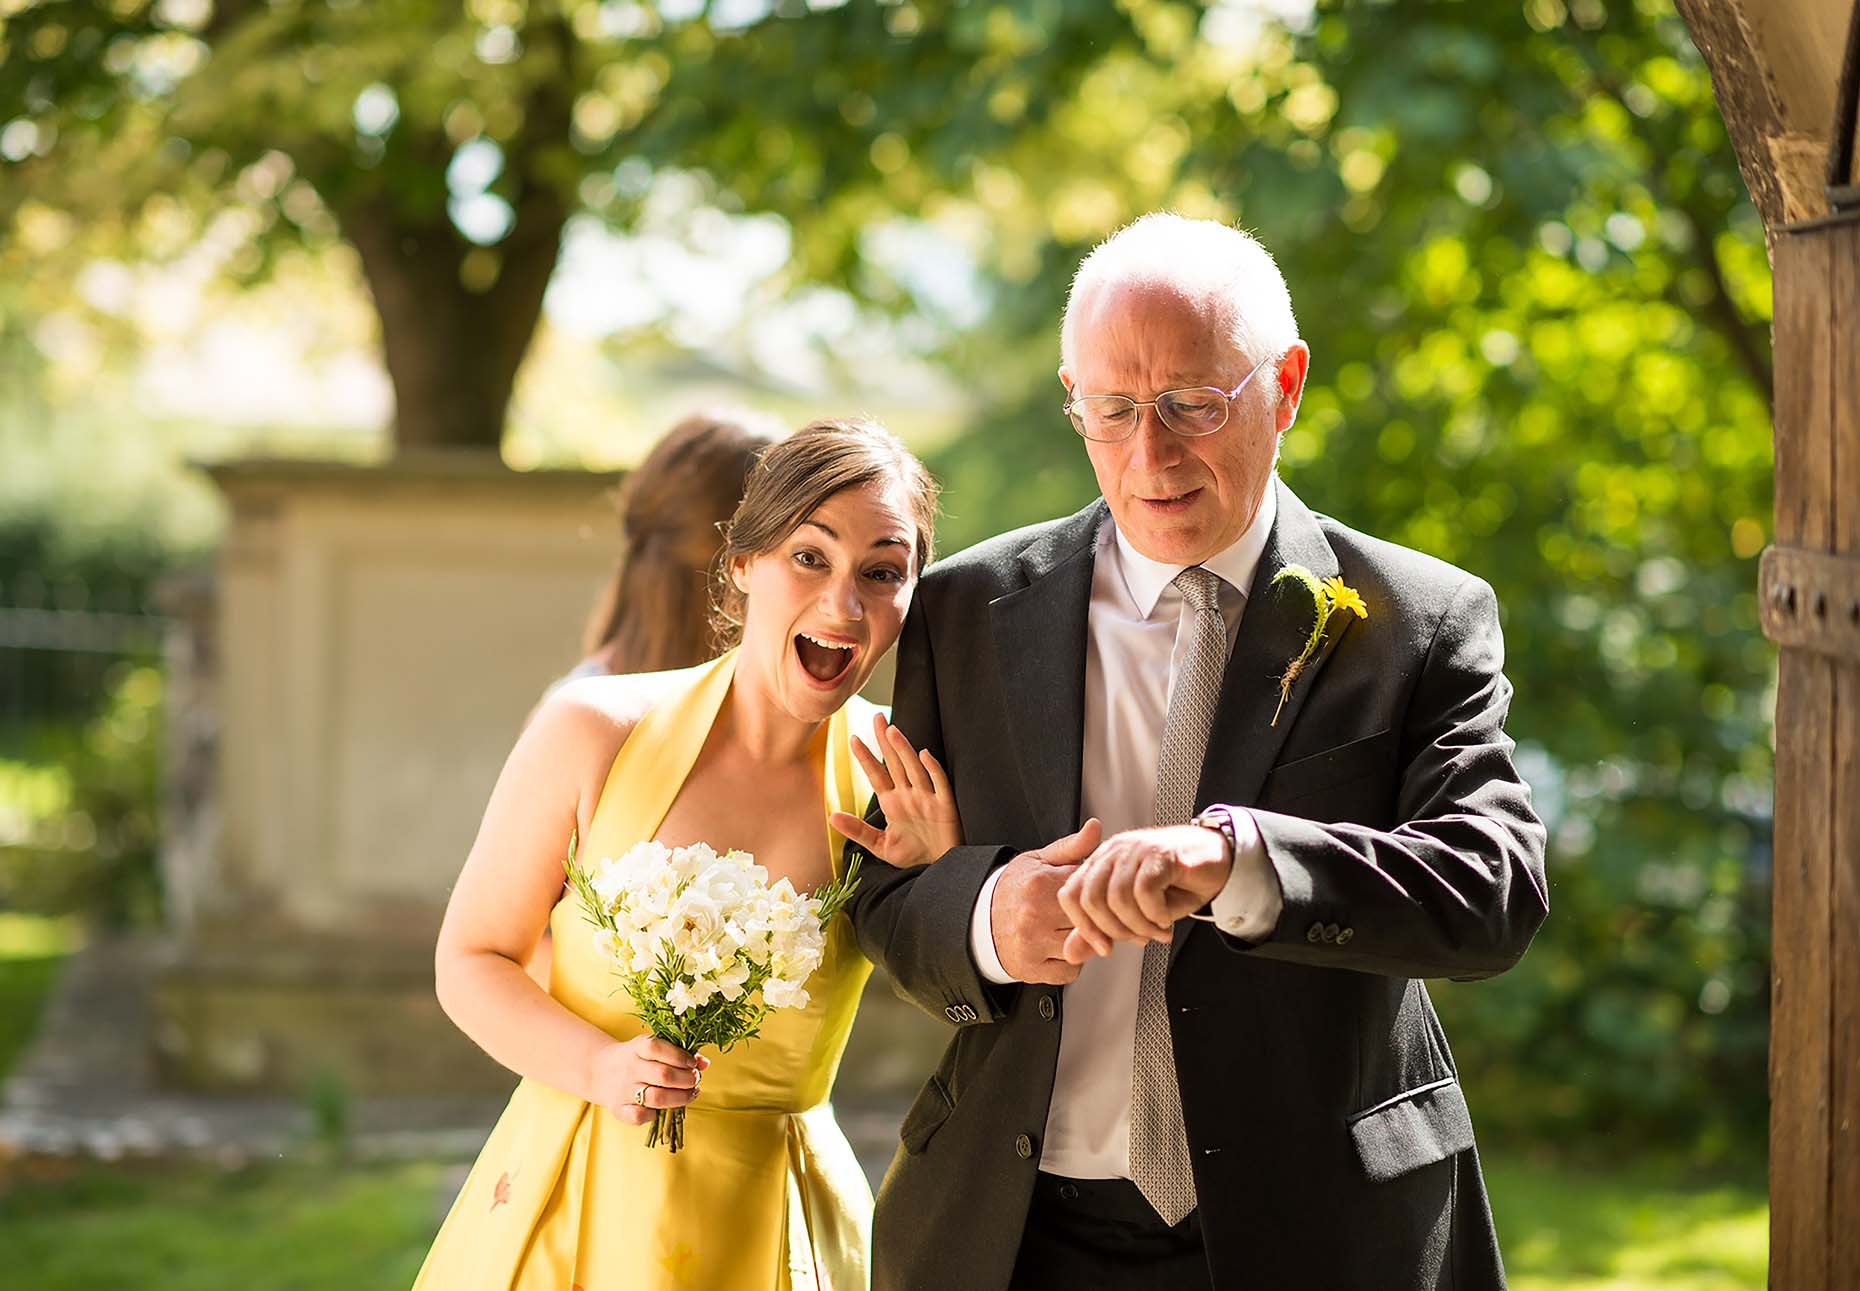 frampton-wedding-bride-yellow-dress-colour-church-with-father-05